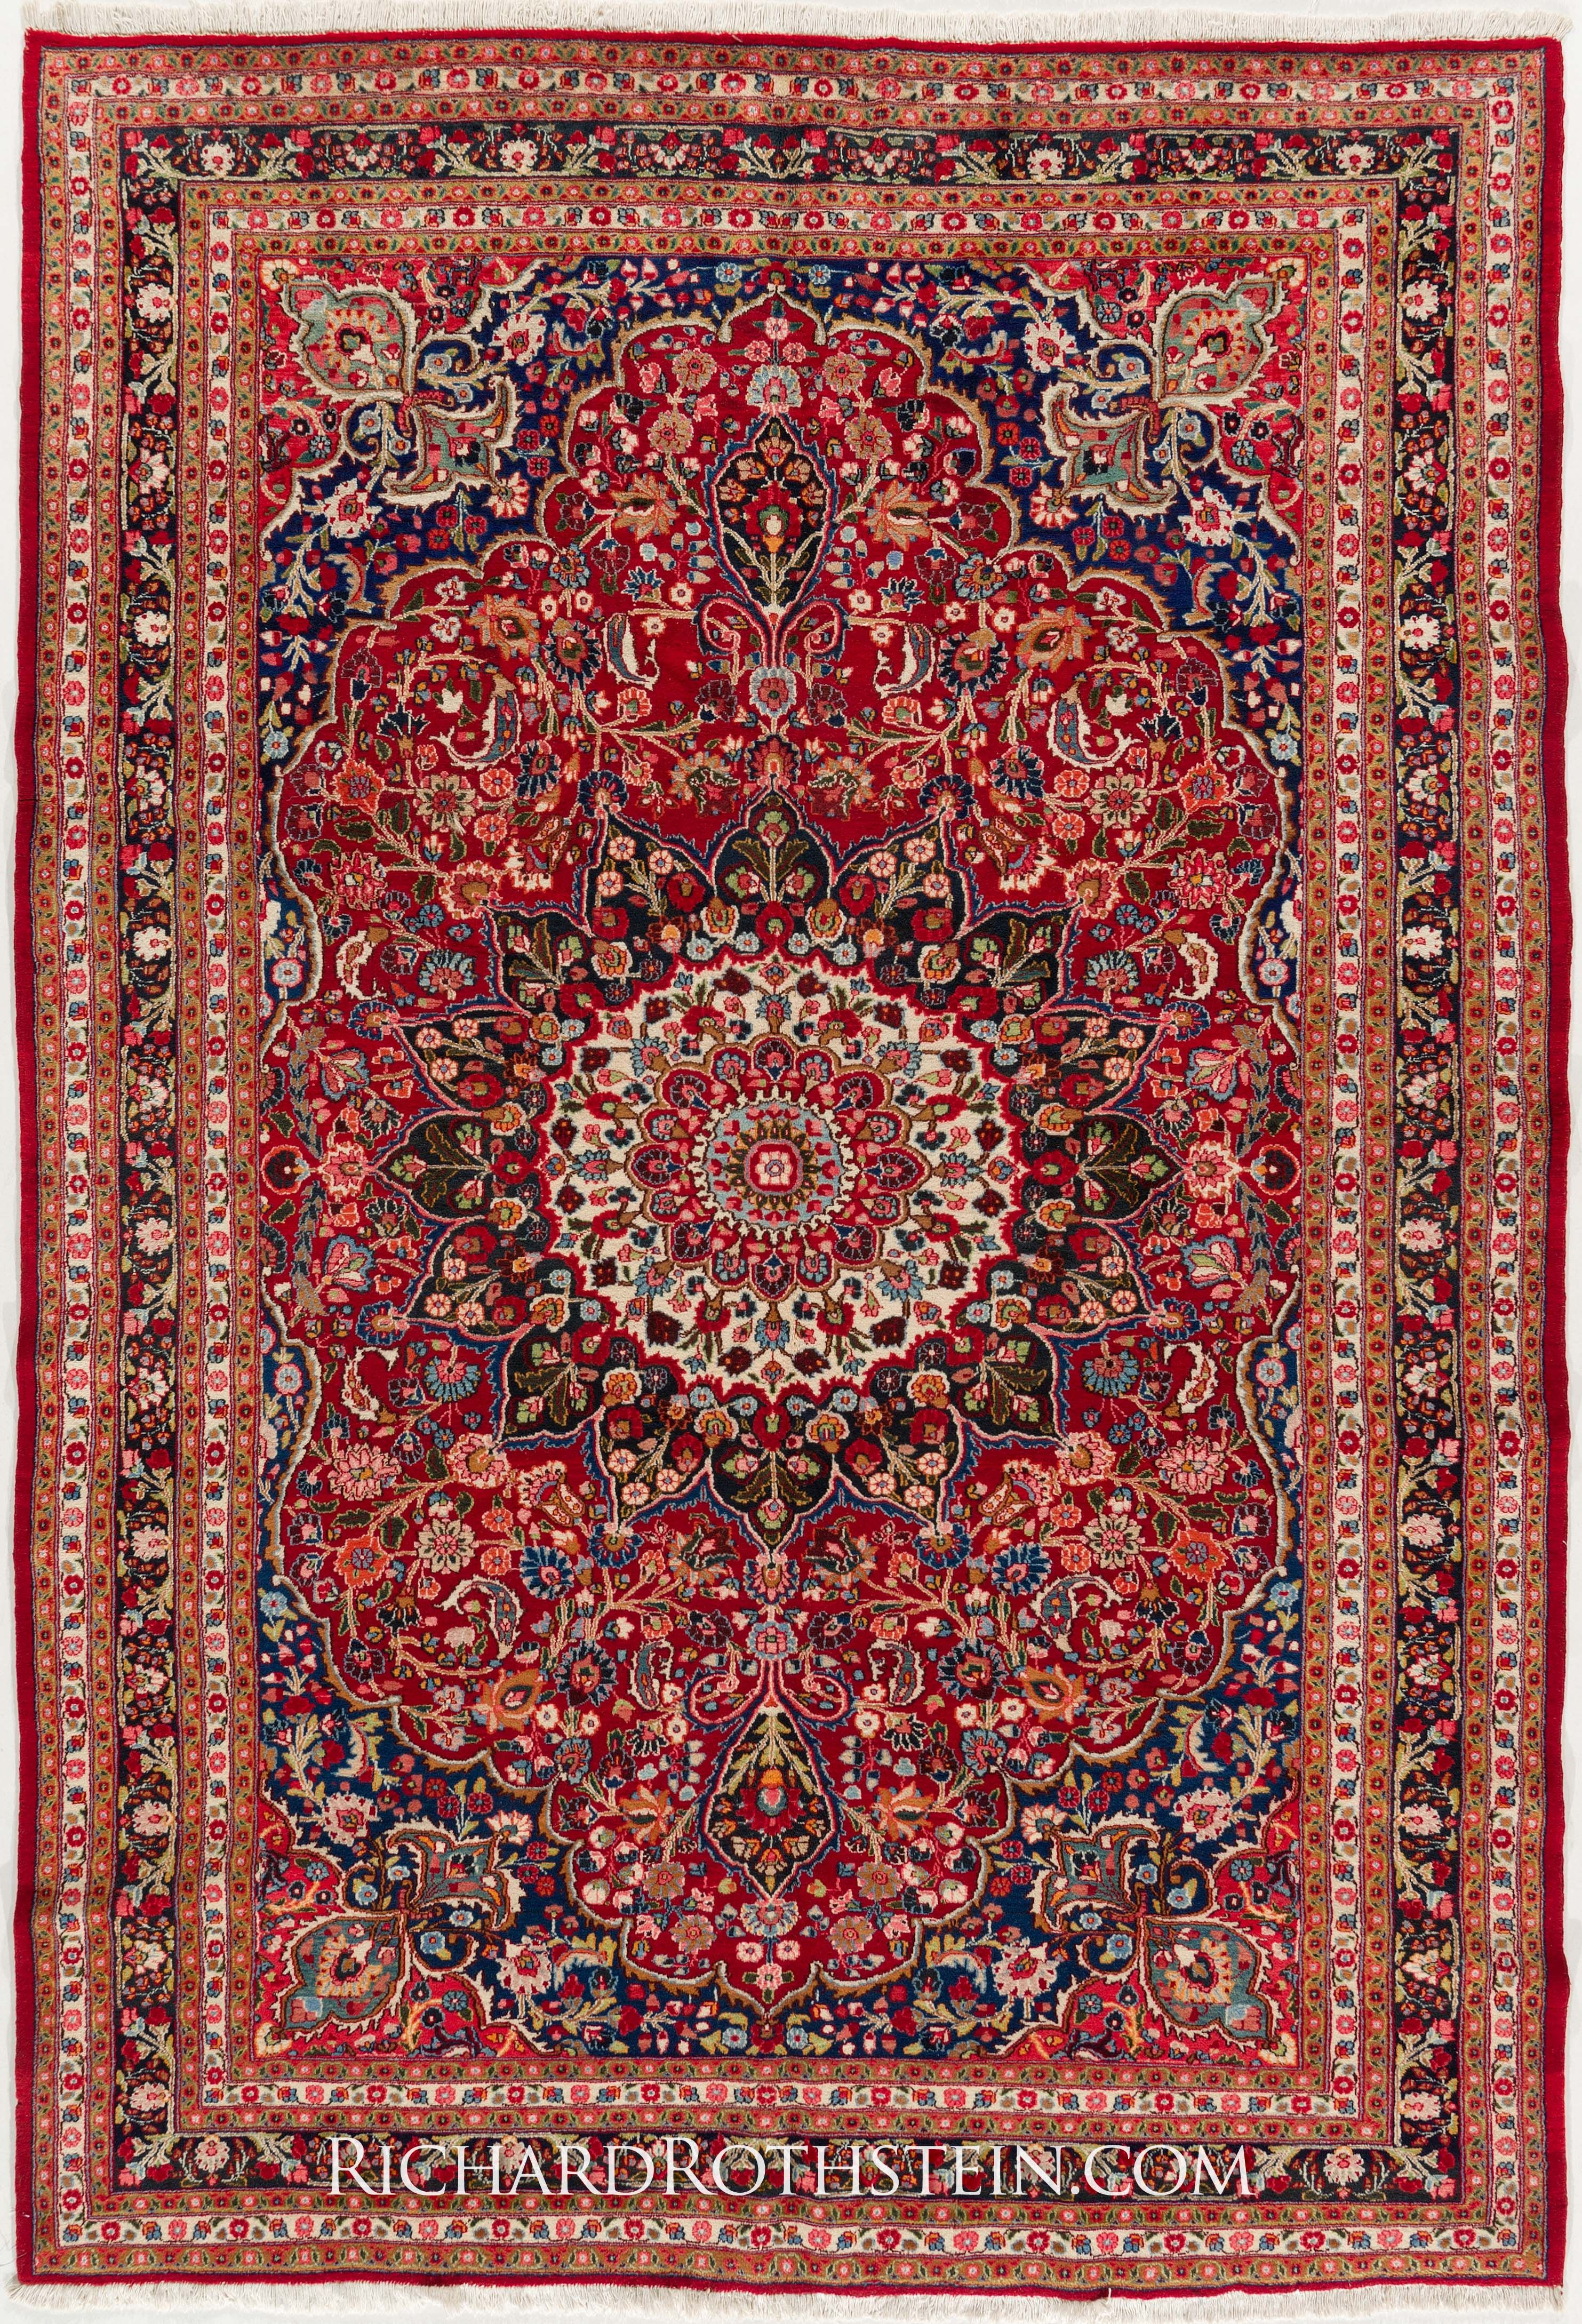 Oriental Rugs   Artistry And Craftsman Is Just Beautiful. Artwork For Your  Floors.